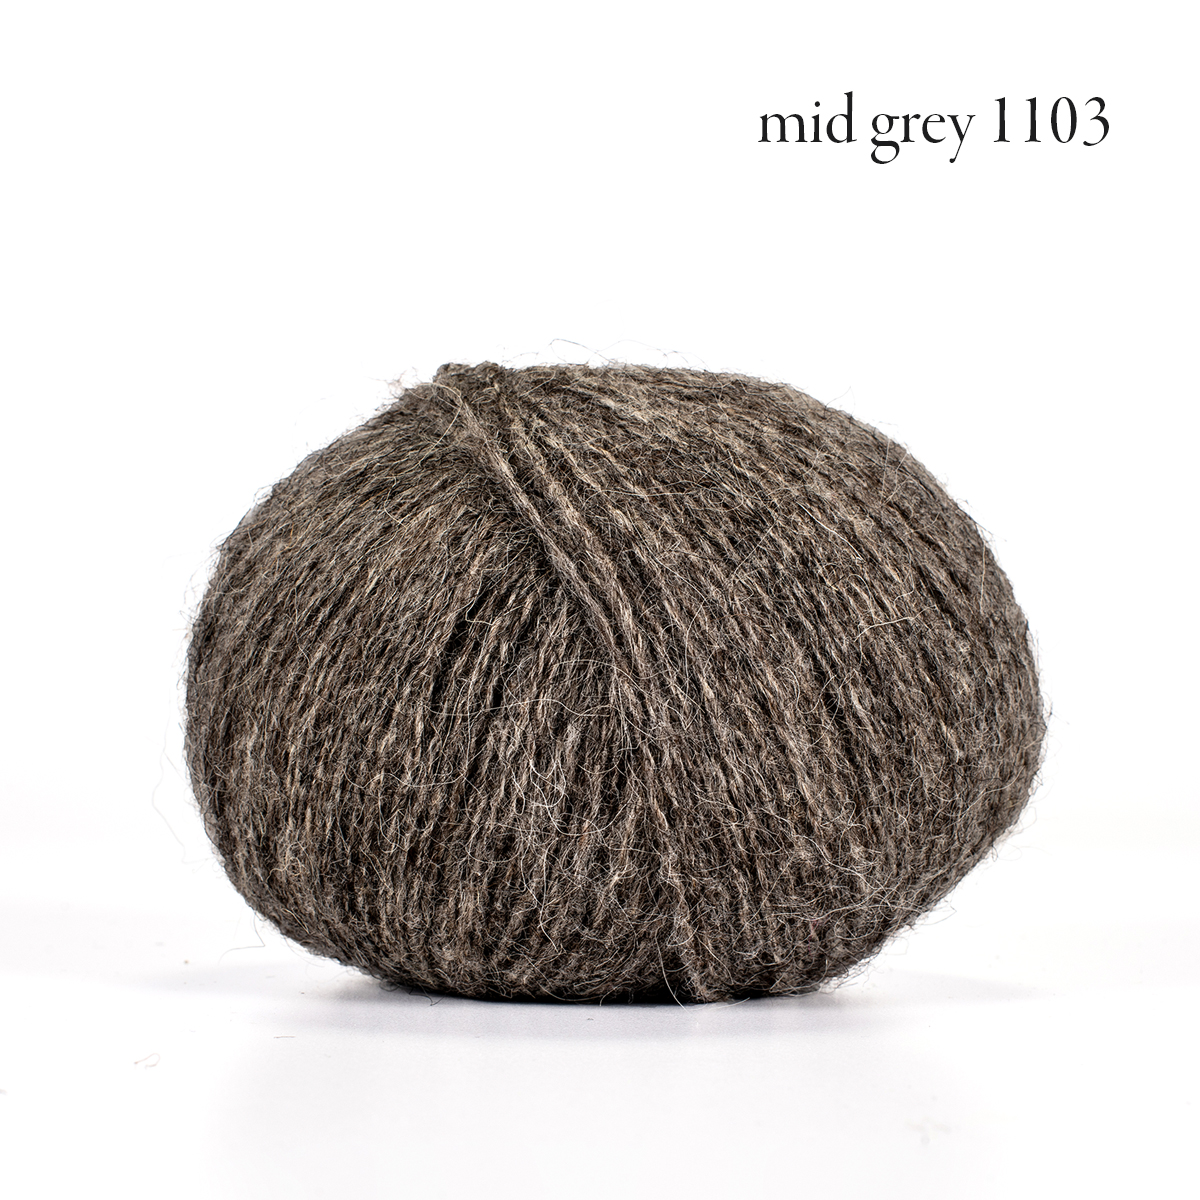 brushed tradition mid grey 1103.jpg